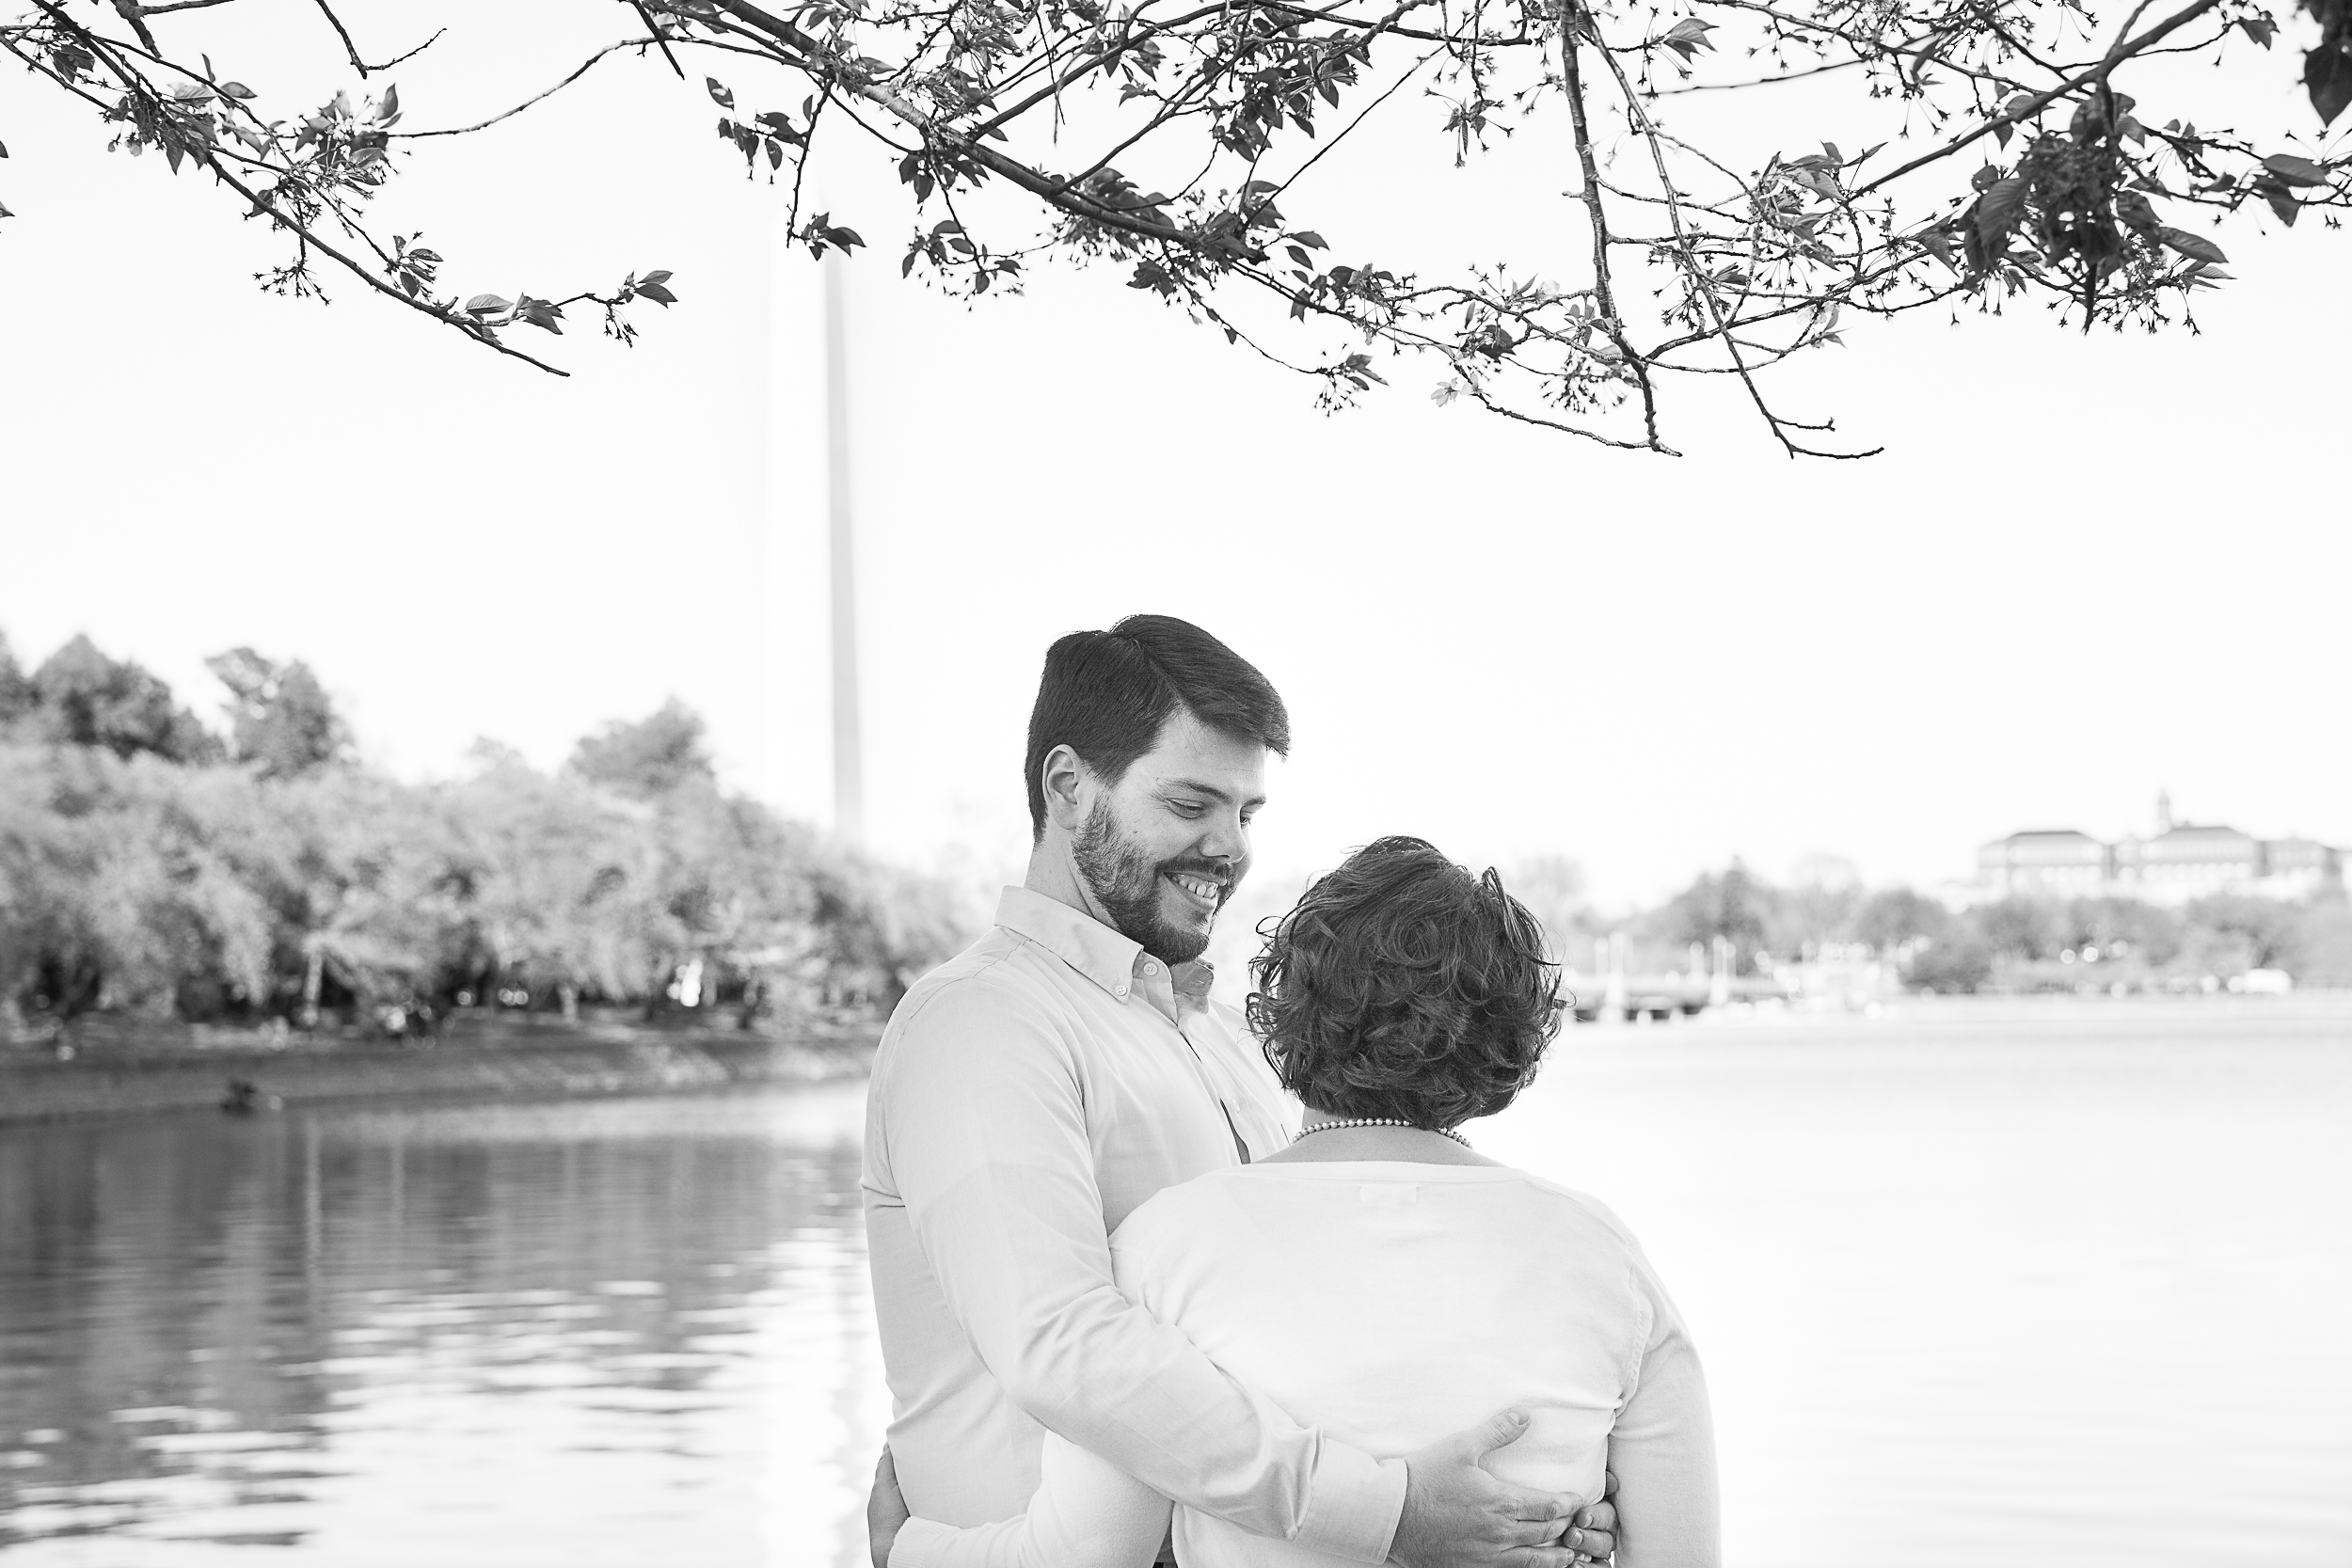 Kathryn-Stephen-Engagement-Kim-Pham-Clark-Photography-11.jpg